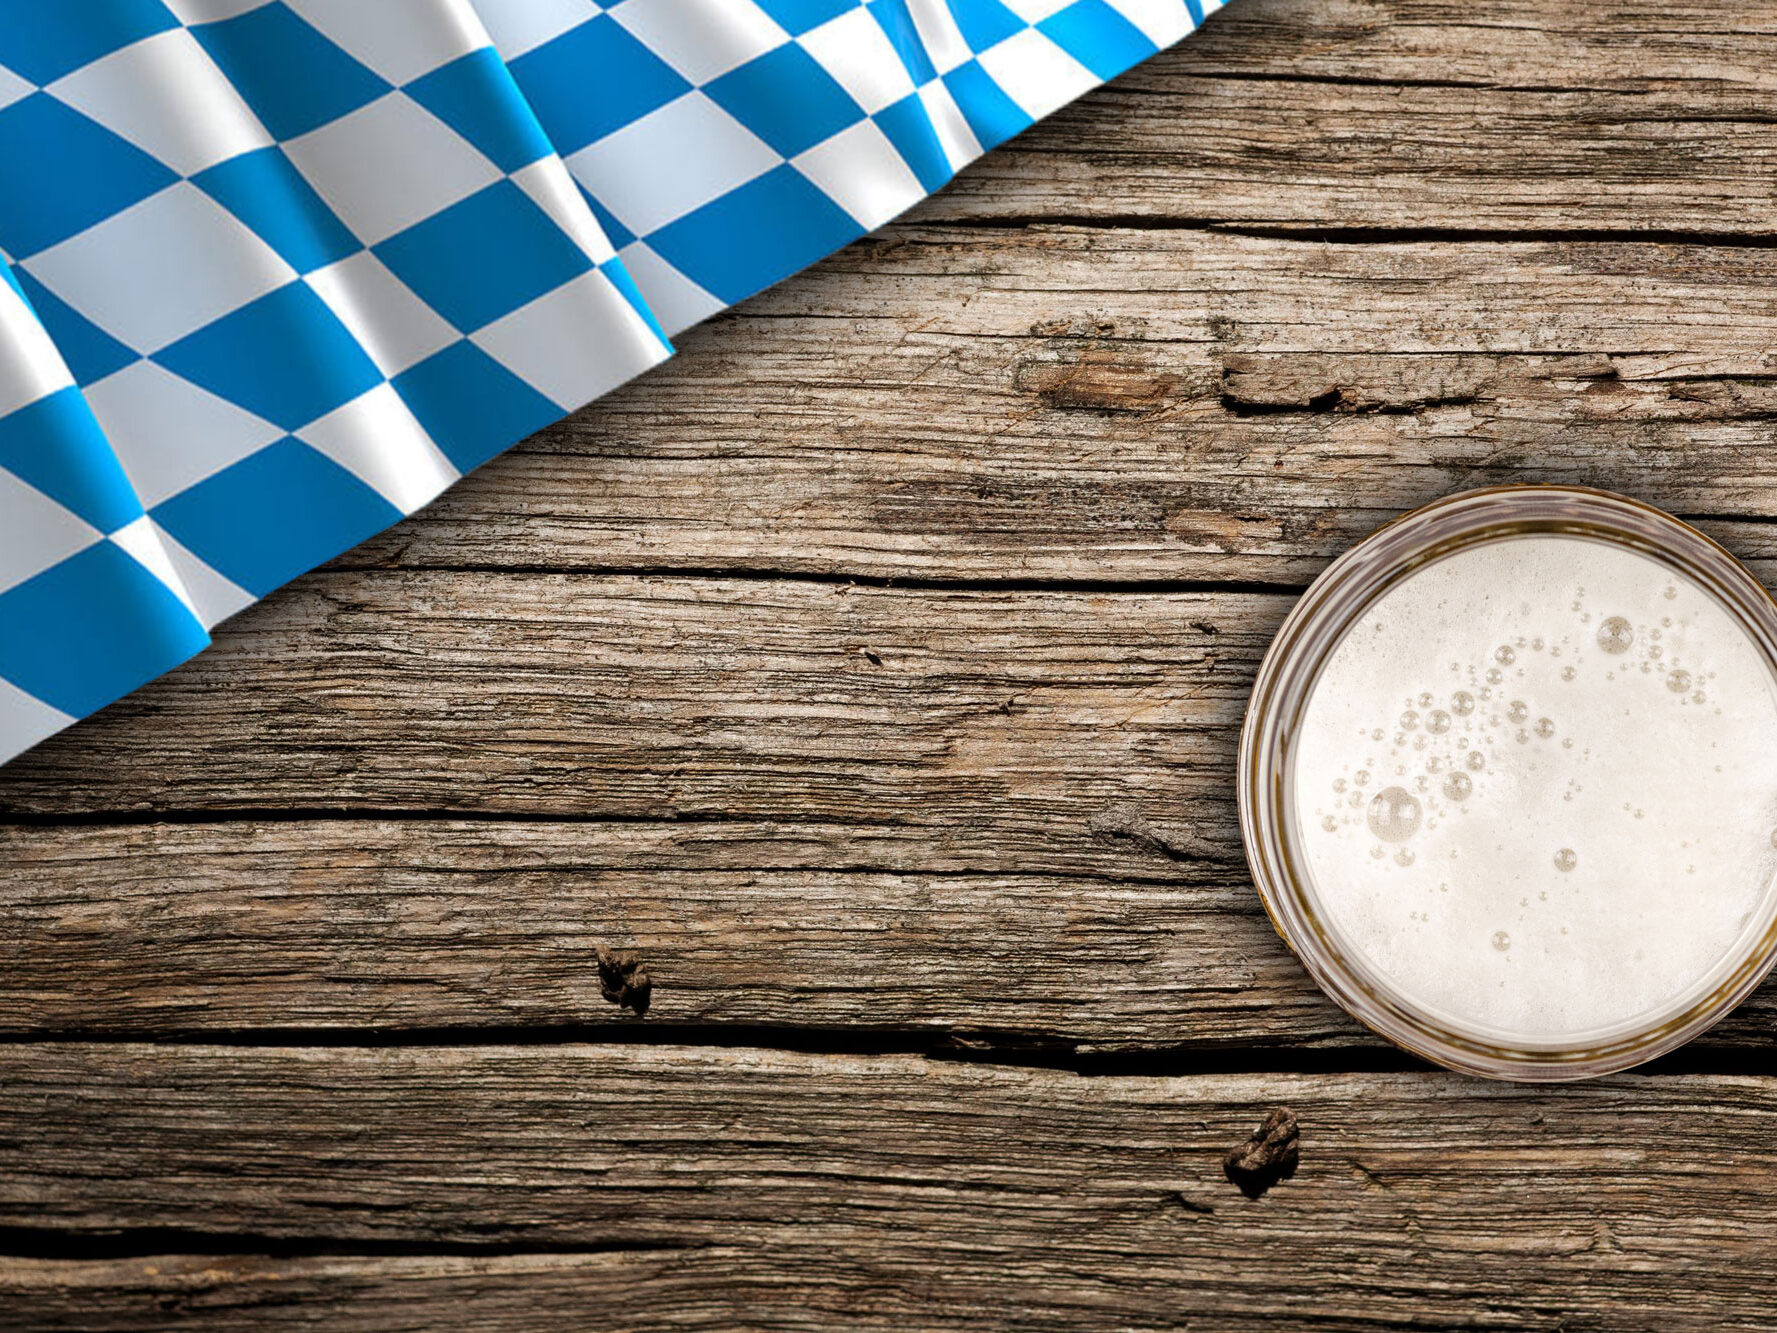 Oktoberfest | Powered by Badmeister Solothurn